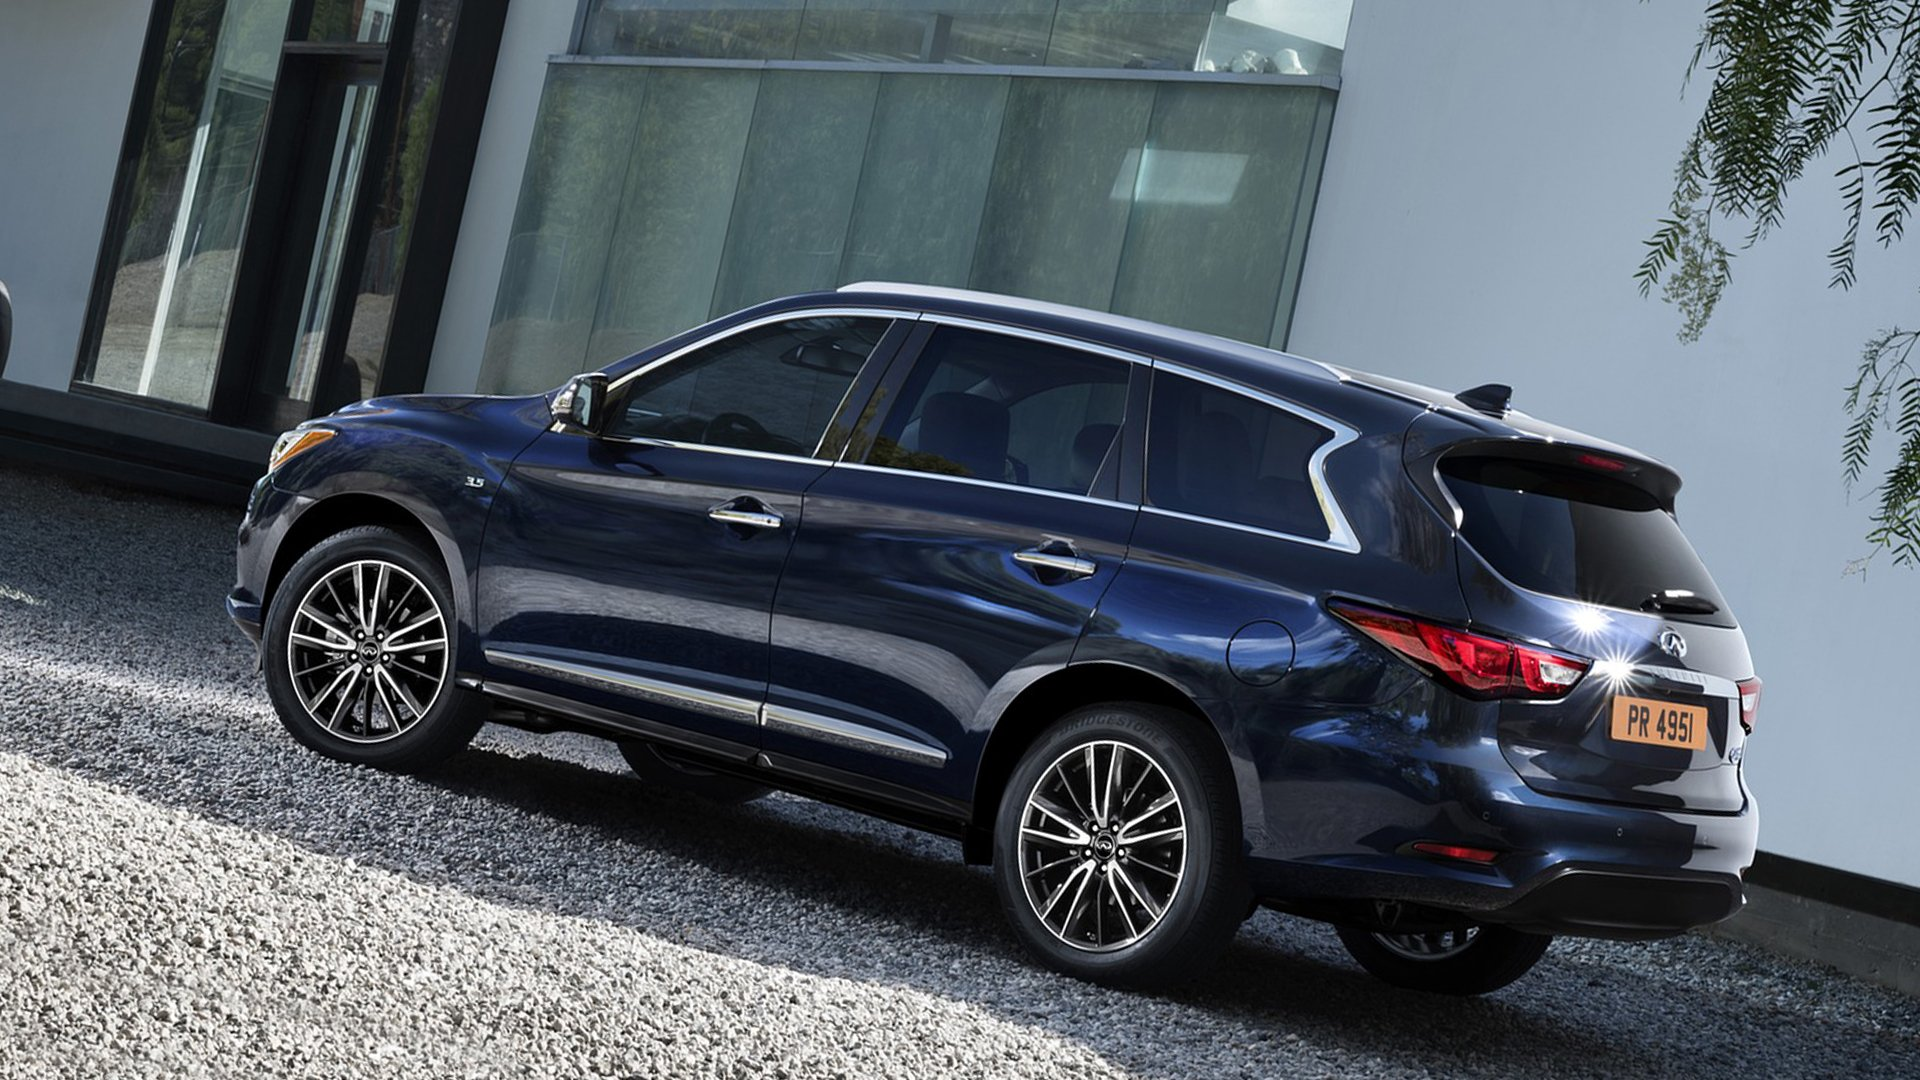 2018 Infiniti QX60 Premium Car HD